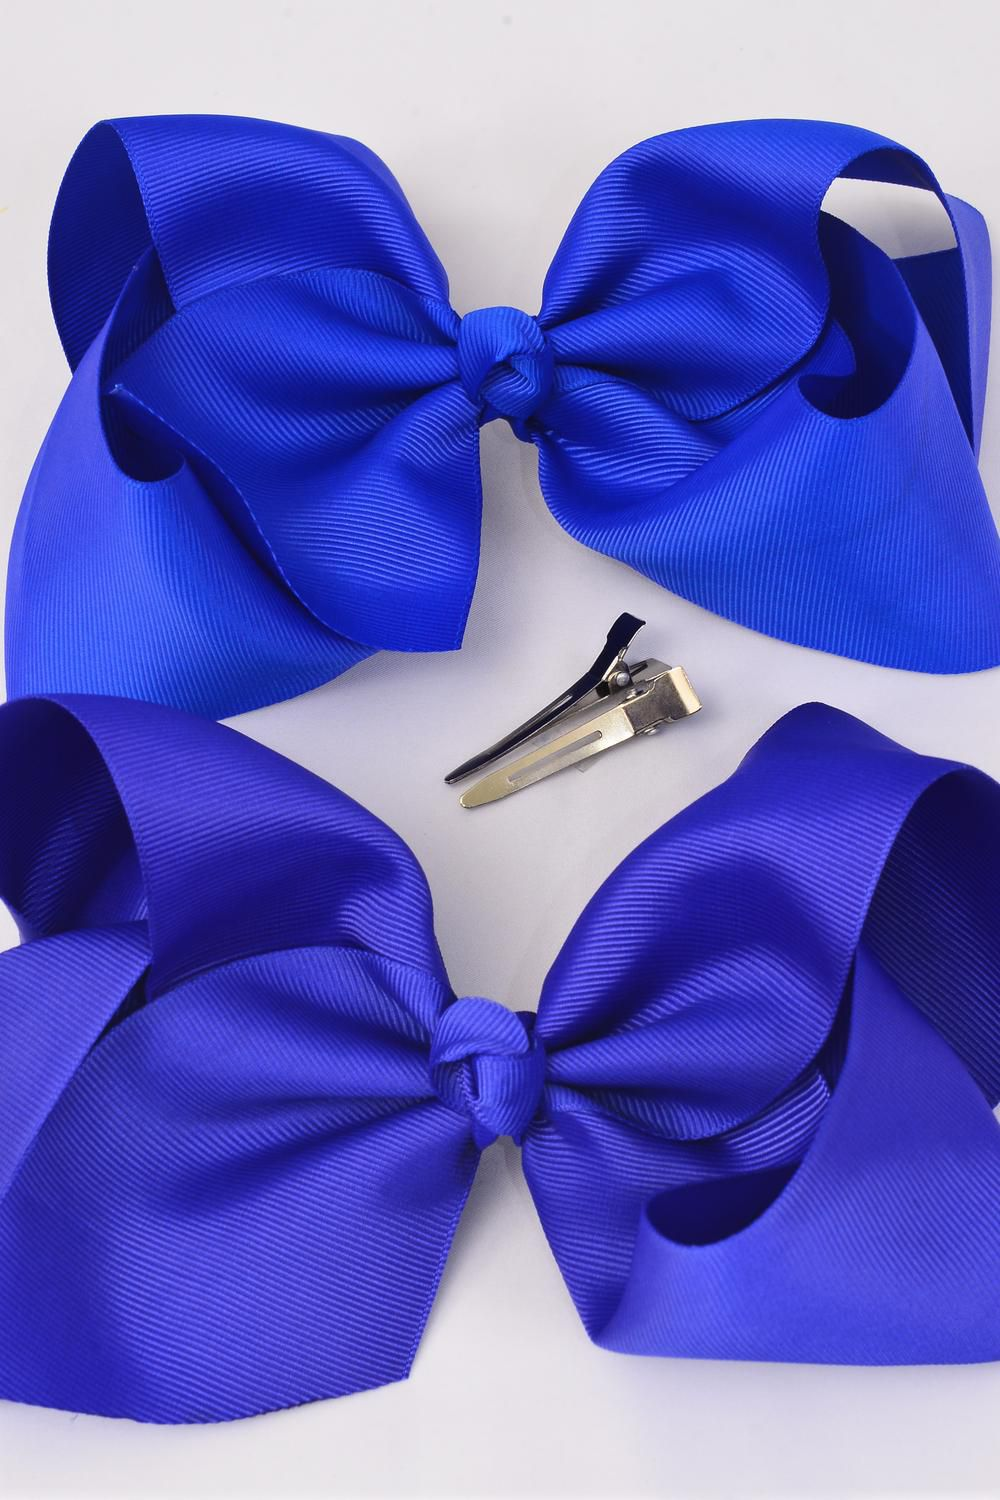 "Hair Bow Cheer Type Bow Royal Blue Mix Alligator Clip Grosgrain Fabric Bow-tie/DZ **Royal Blue Mix** Alligator Clip,Size-8""x 7"" Wide,6 of each Color Asst,Clip Strip & UPC Code"